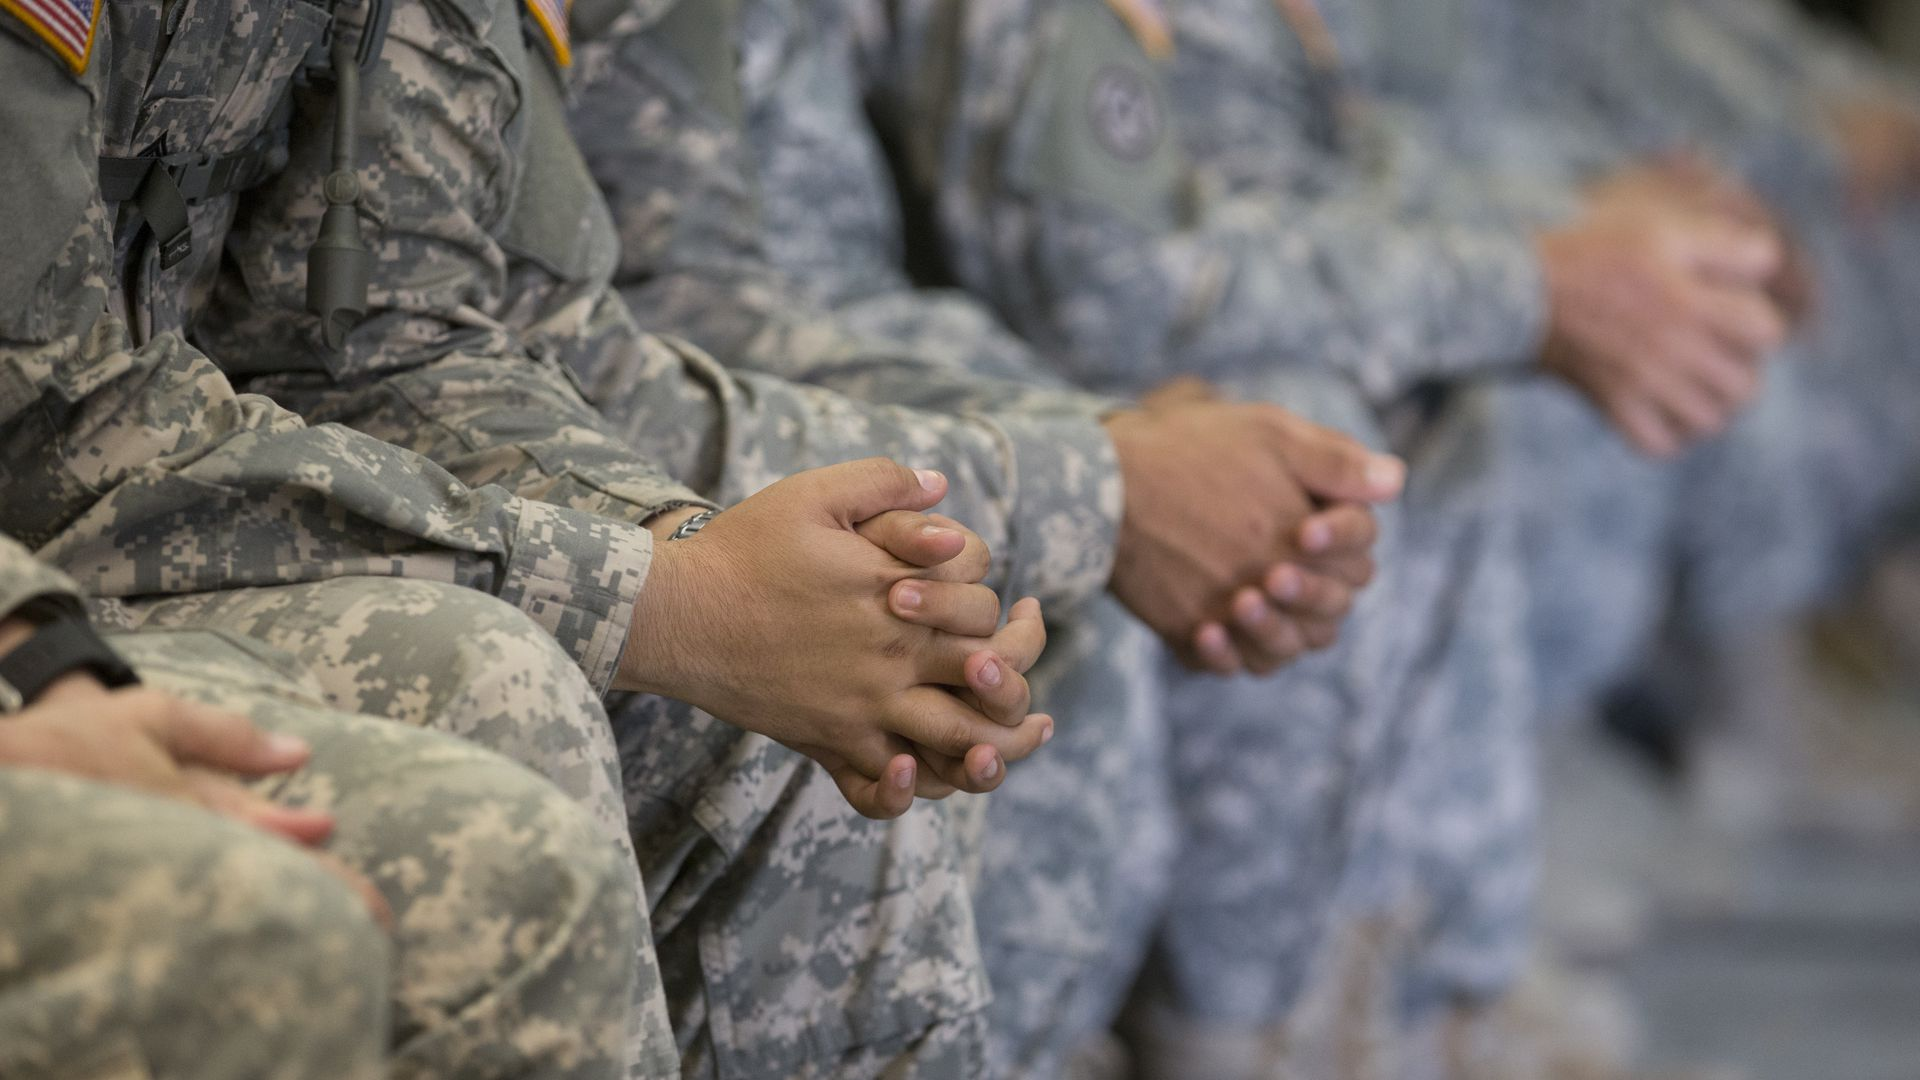 National Guard troops' hands clasped together as they sit in a row in uniform.